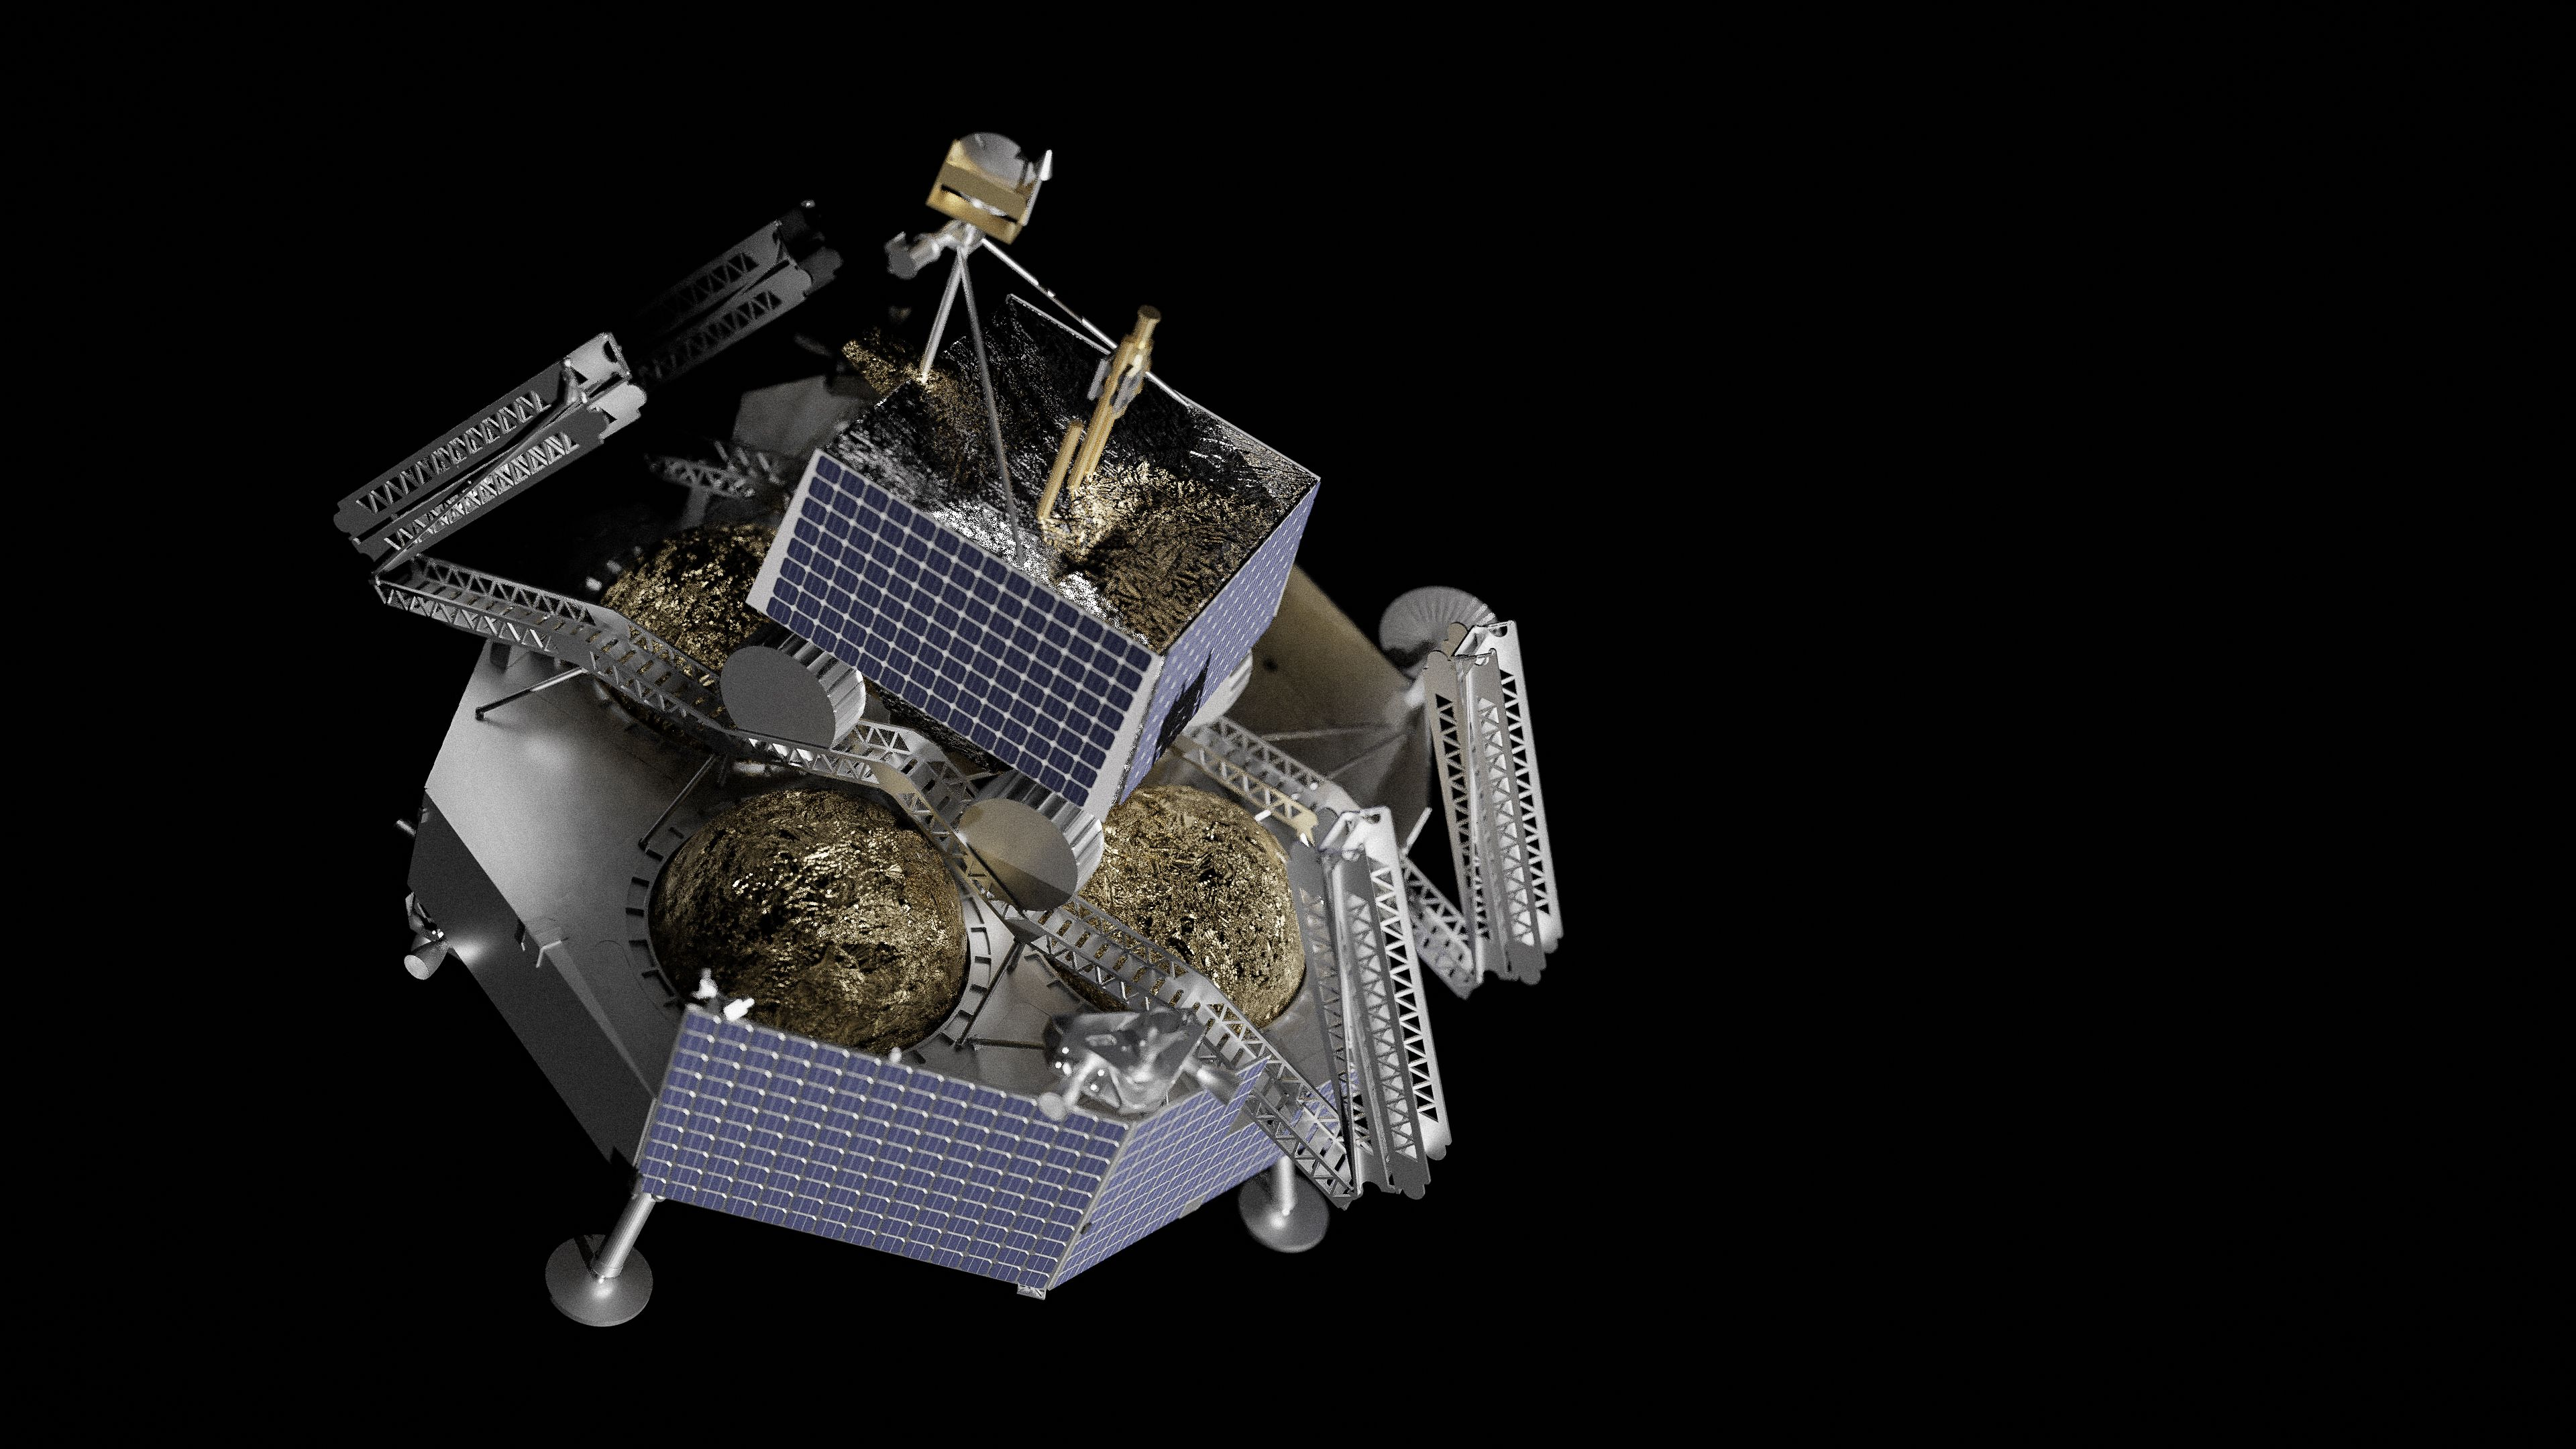 Griffin Lander To Ferry NASA's Lunar Rover